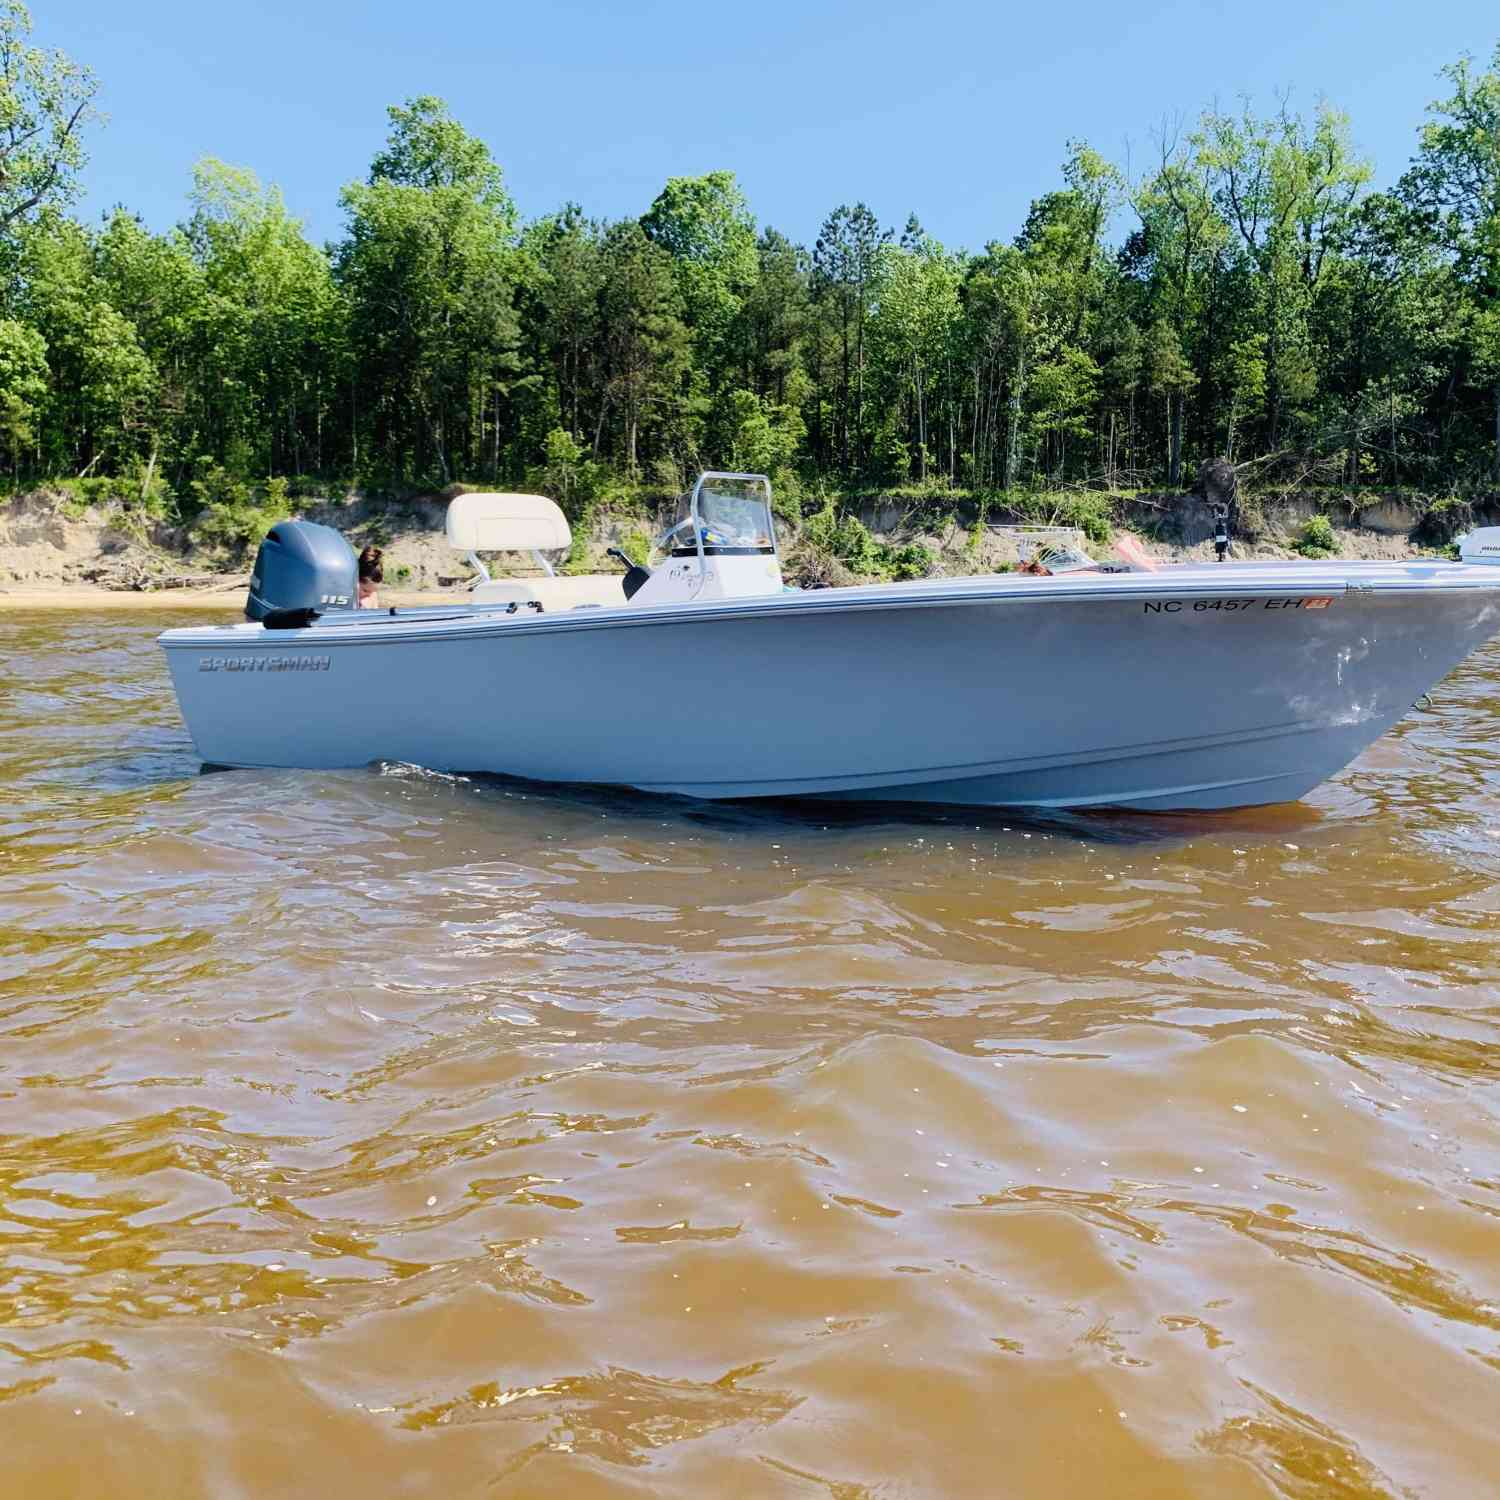 Title: Separation on a Sunday!! - On board their Sportsman Island Reef 19 Center Console - Location: Washington NC. Participating in the Photo Contest #SportsmanMay2020